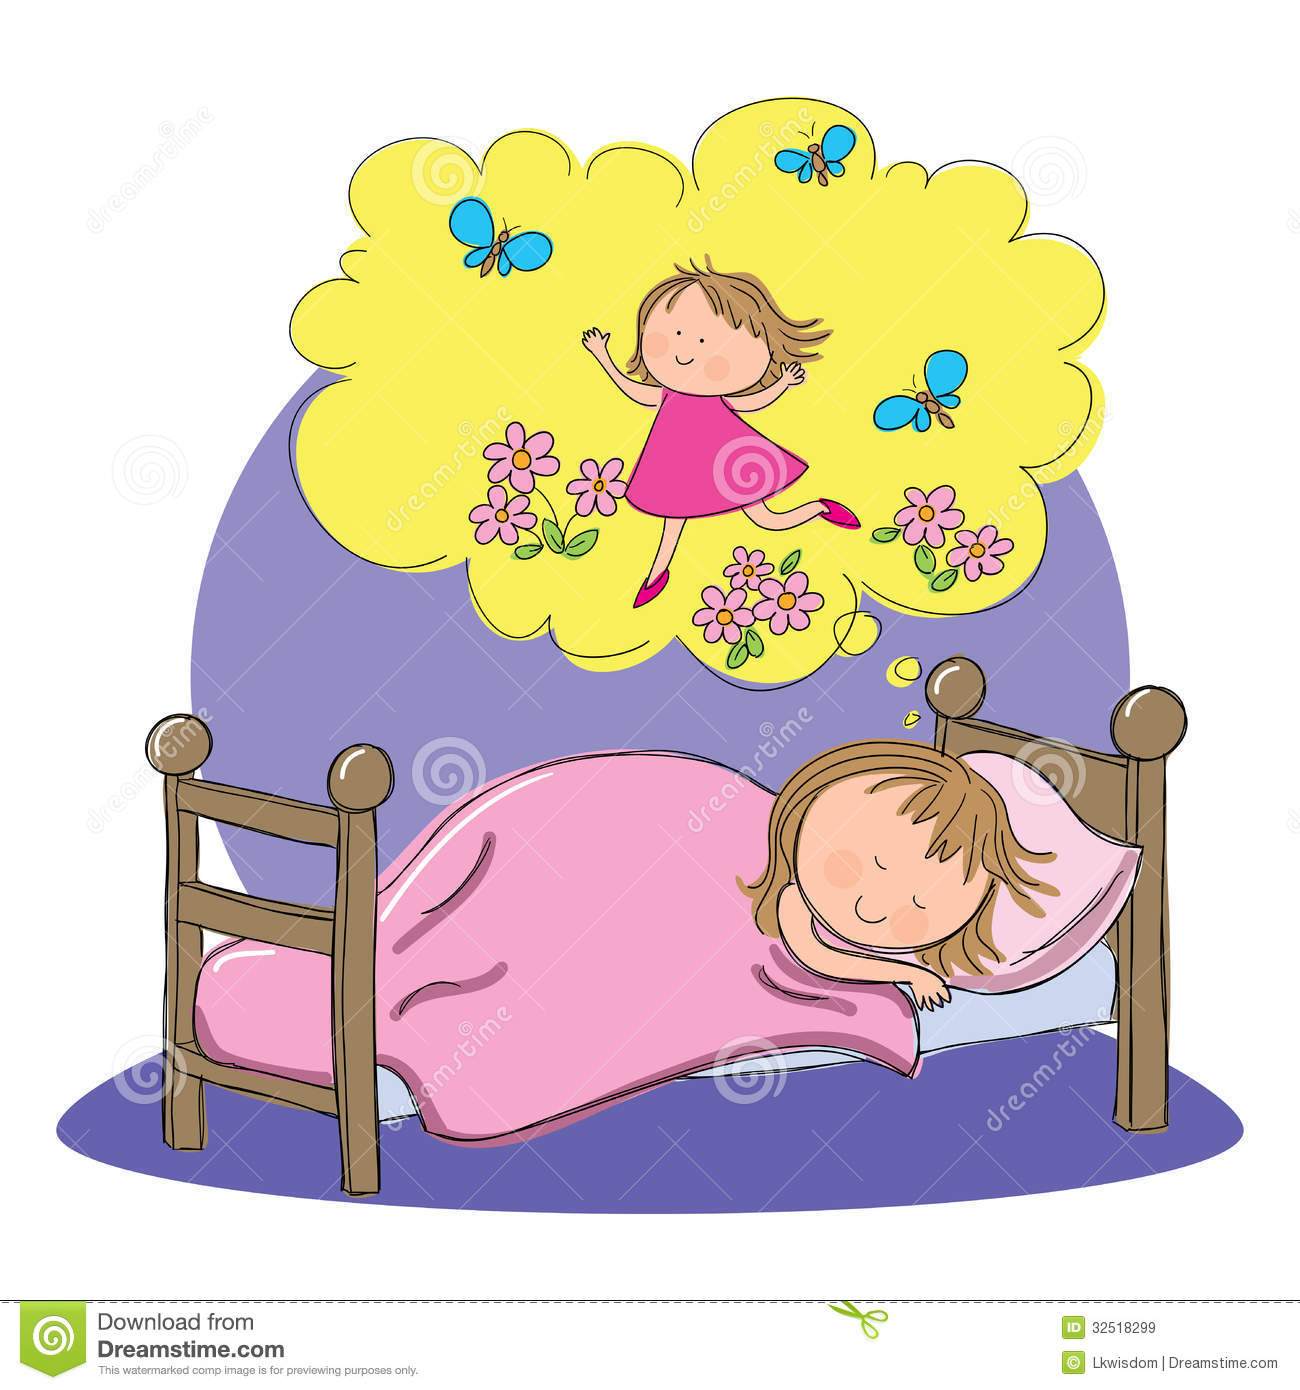 Bedroom Set Prices Girl Dreaming Whilst Sleeping Royalty Free Stock Images